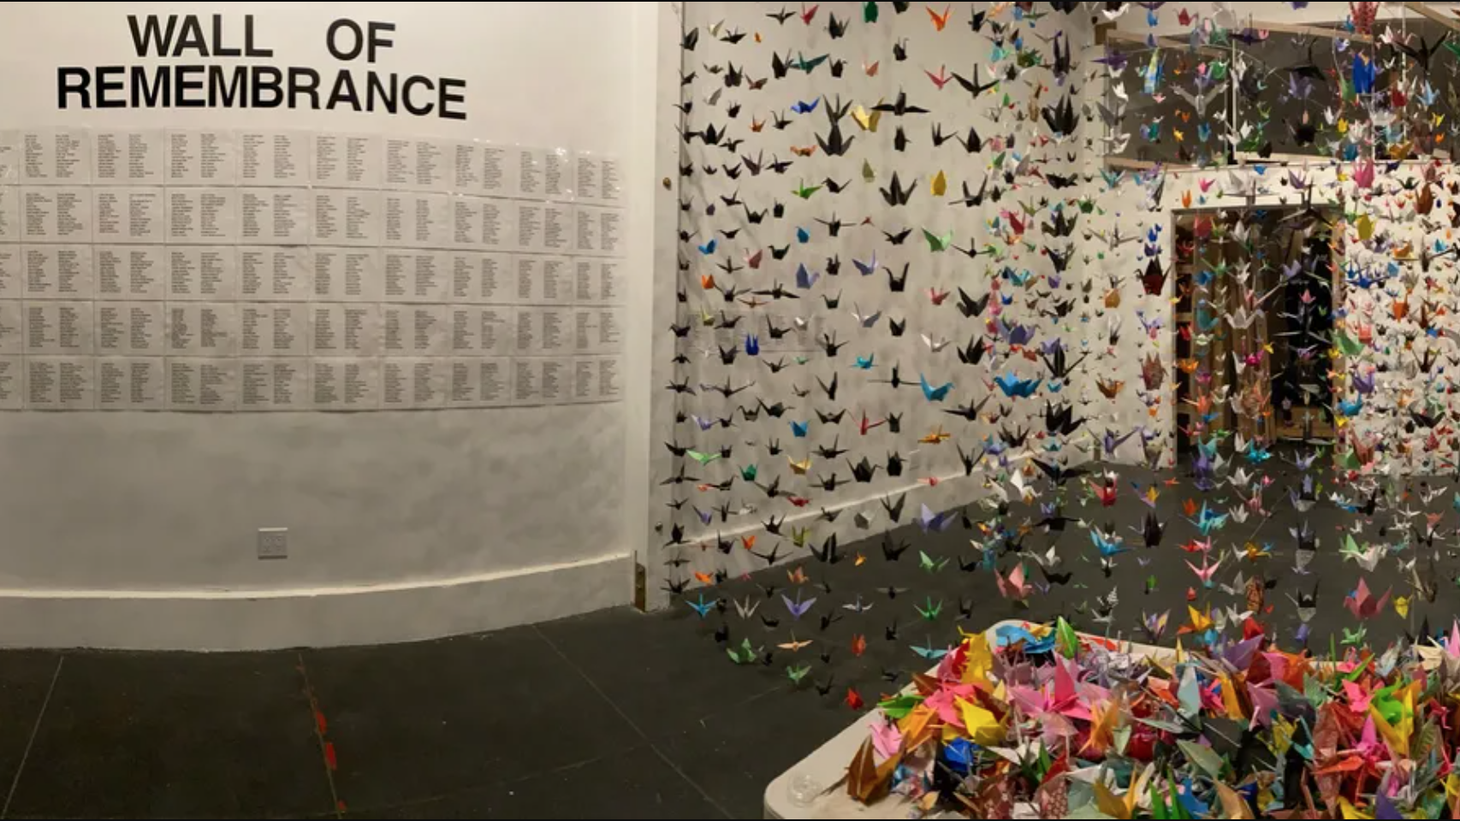 Karla Funderburk of Matter Studio Gallery says she started this origami crane project to process the COVID-related grief she was feeling and witnessing.